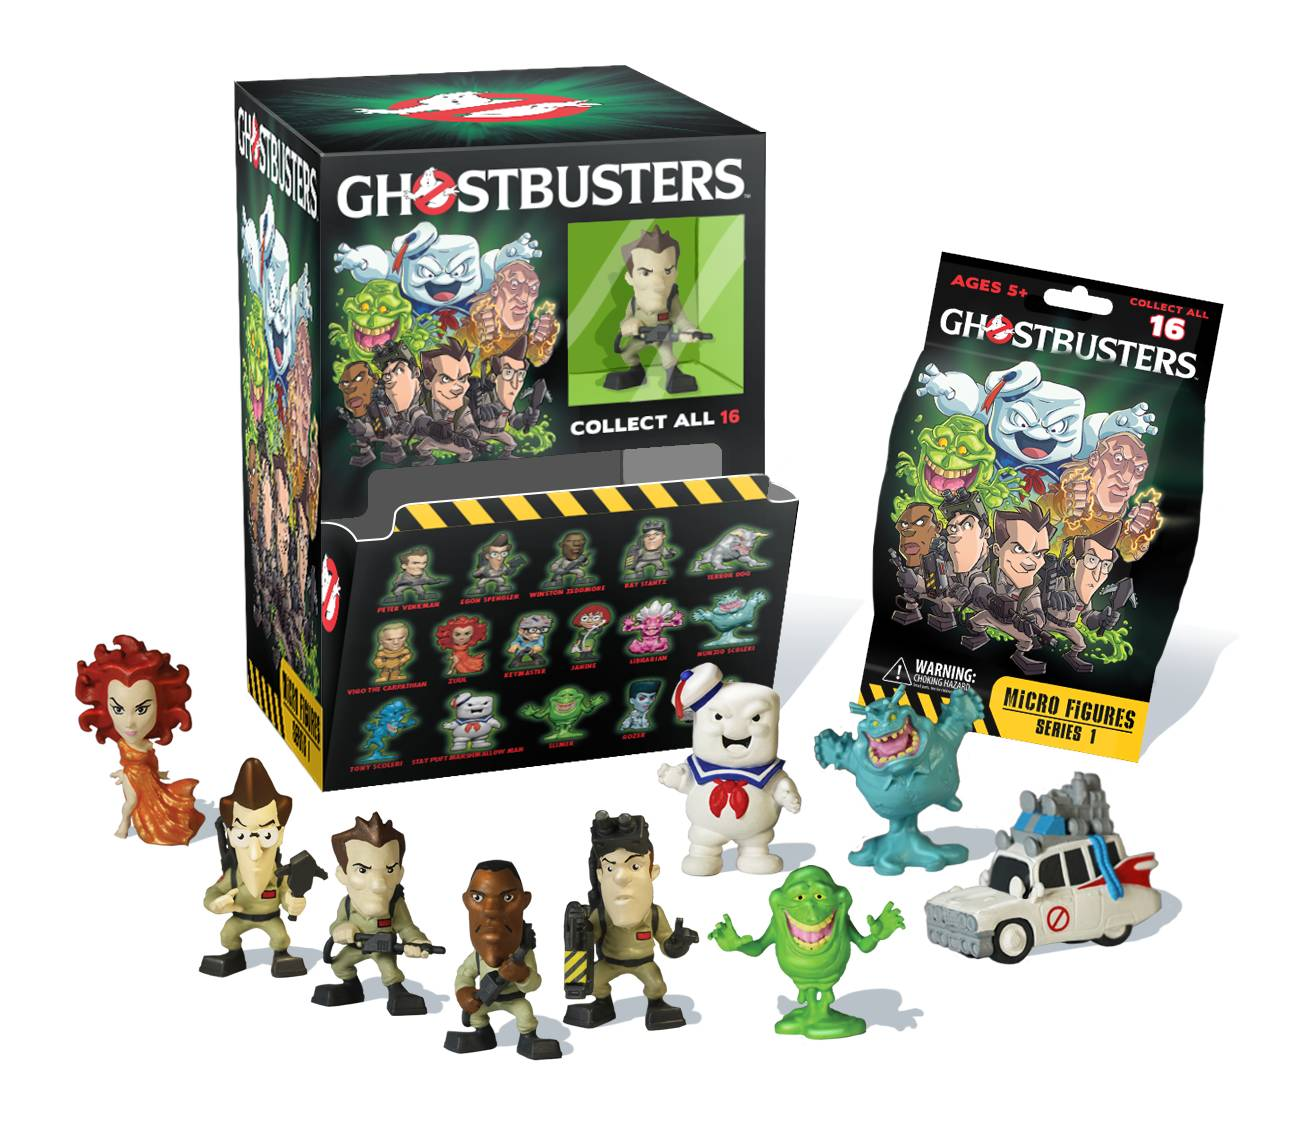 Ghostbusters Micro Figures Blind Bag Shop Ghostbusters